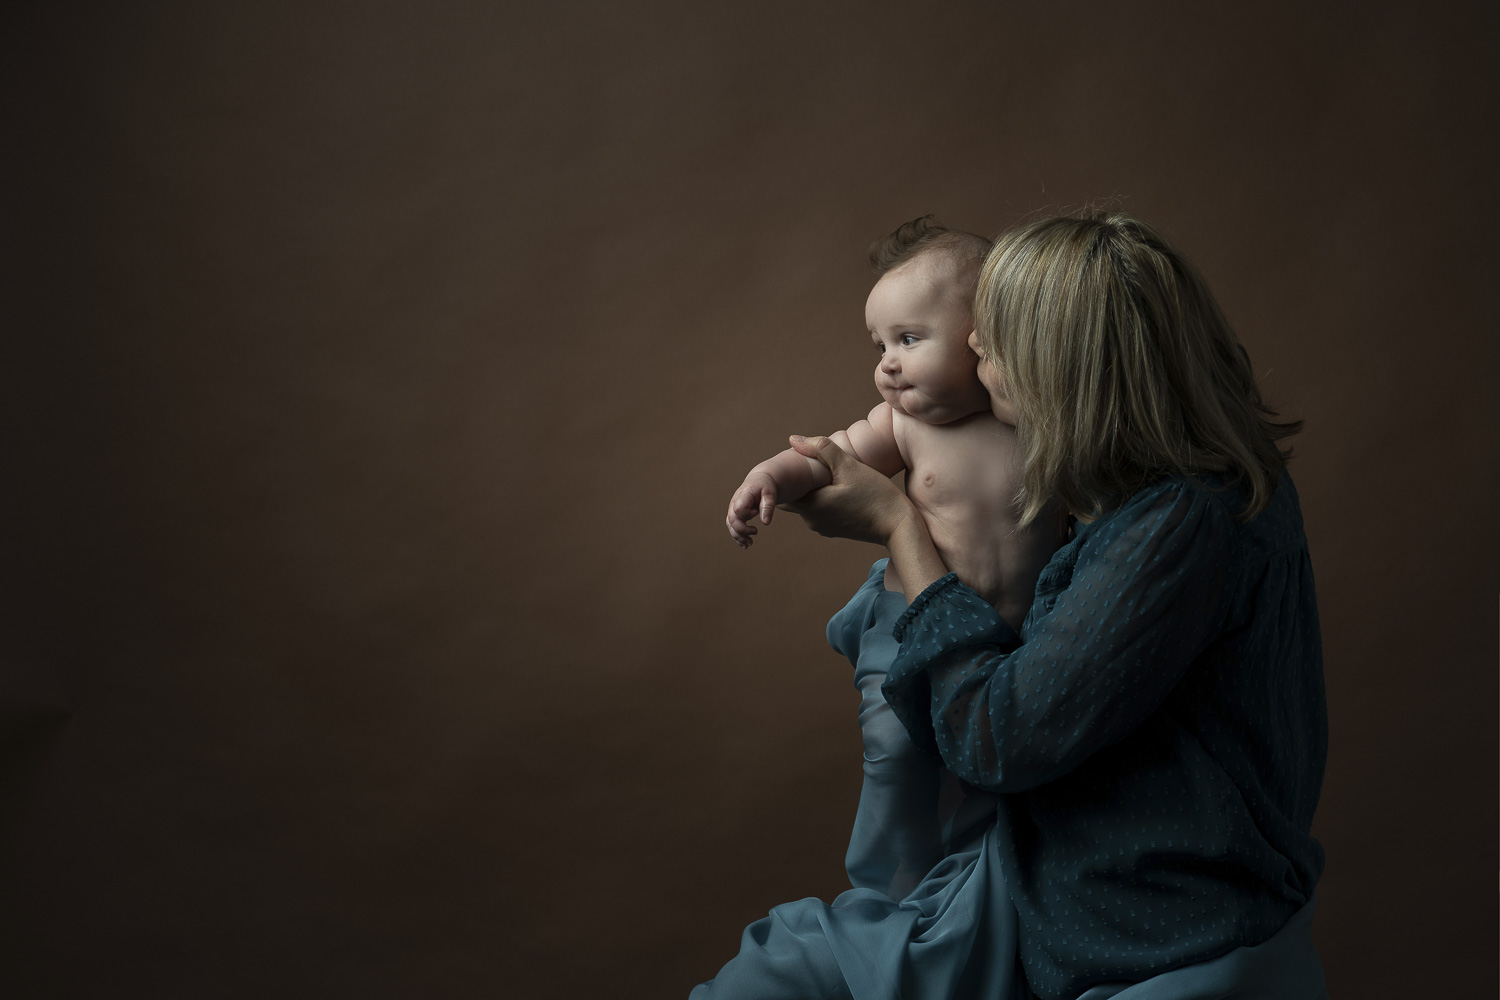 motherhood photoshoot in the studio